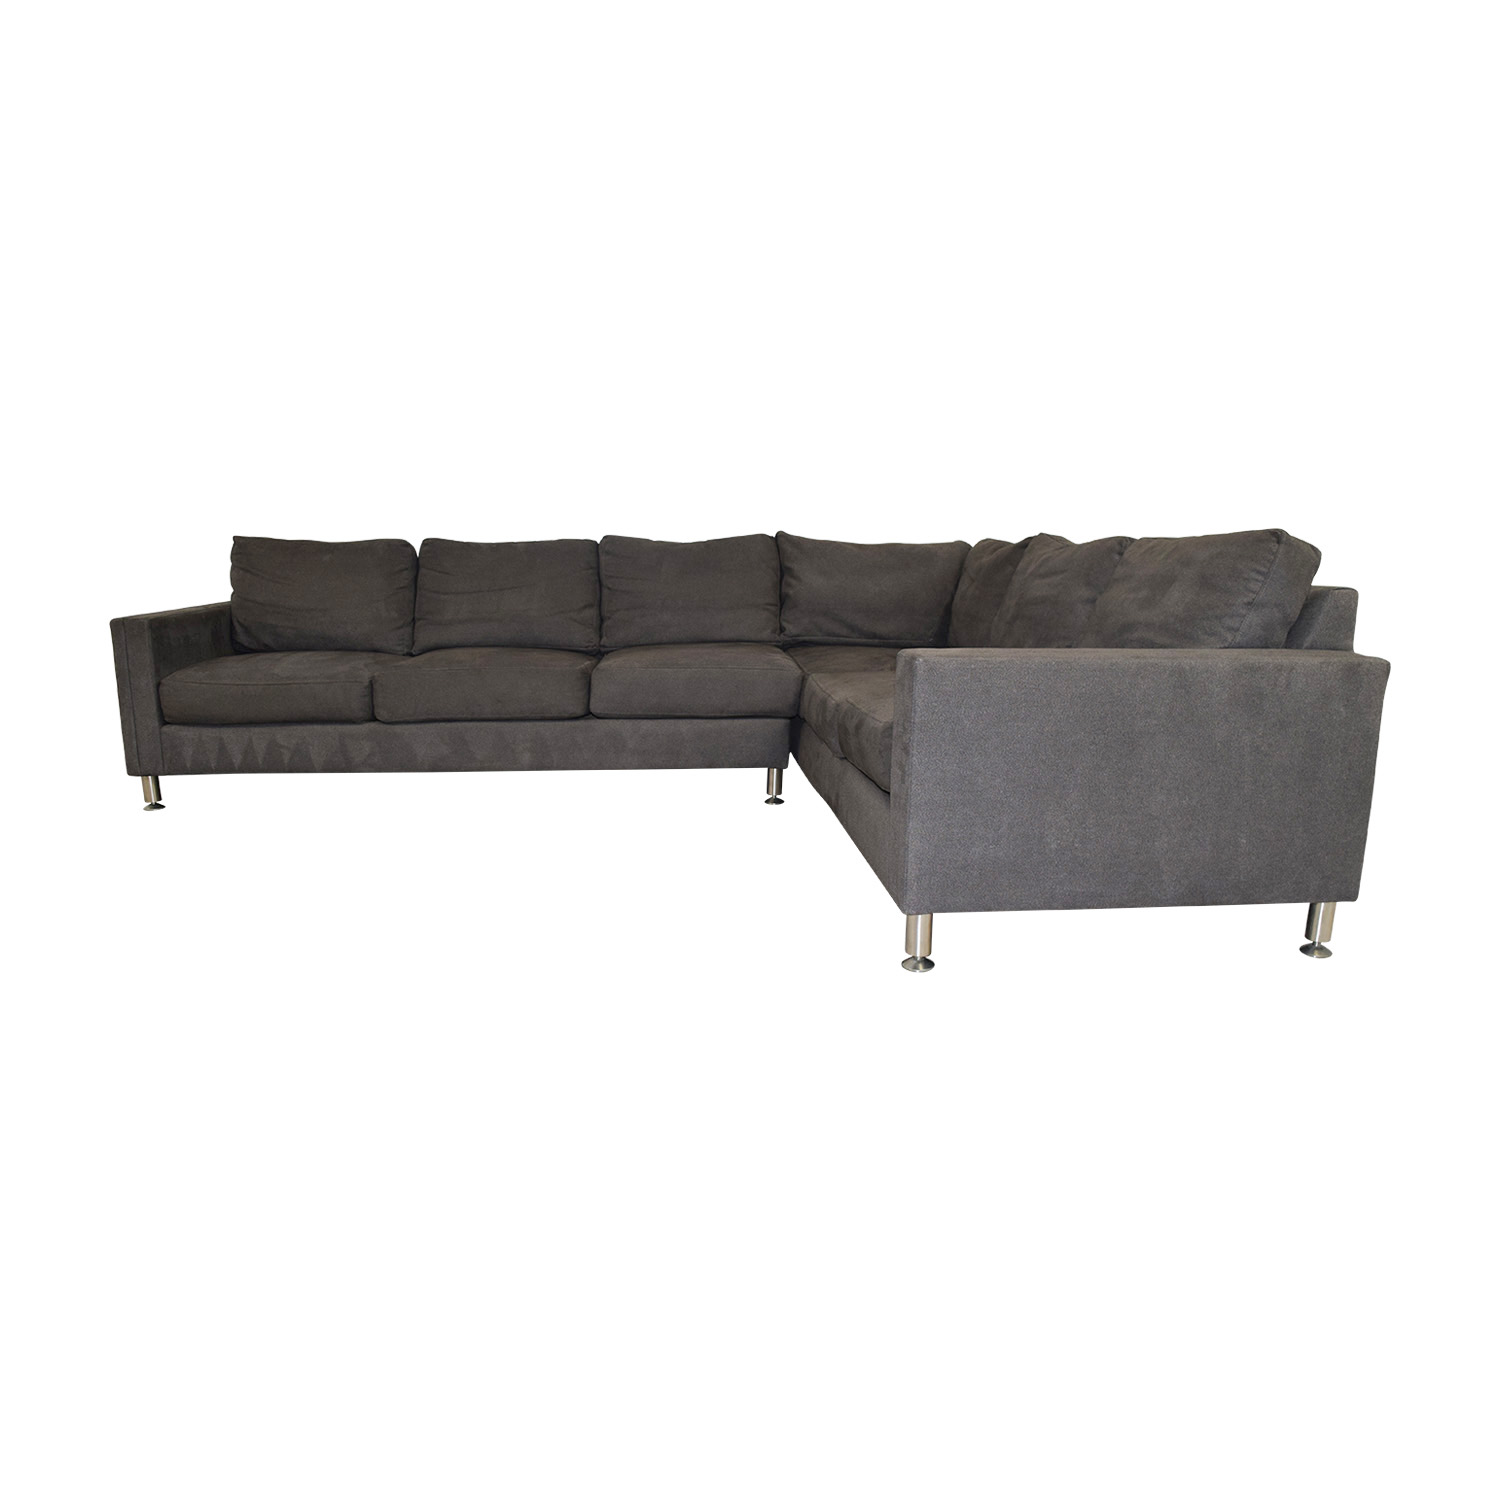 Safavieh Safavieh Grey L-Shaped Sectional for sale